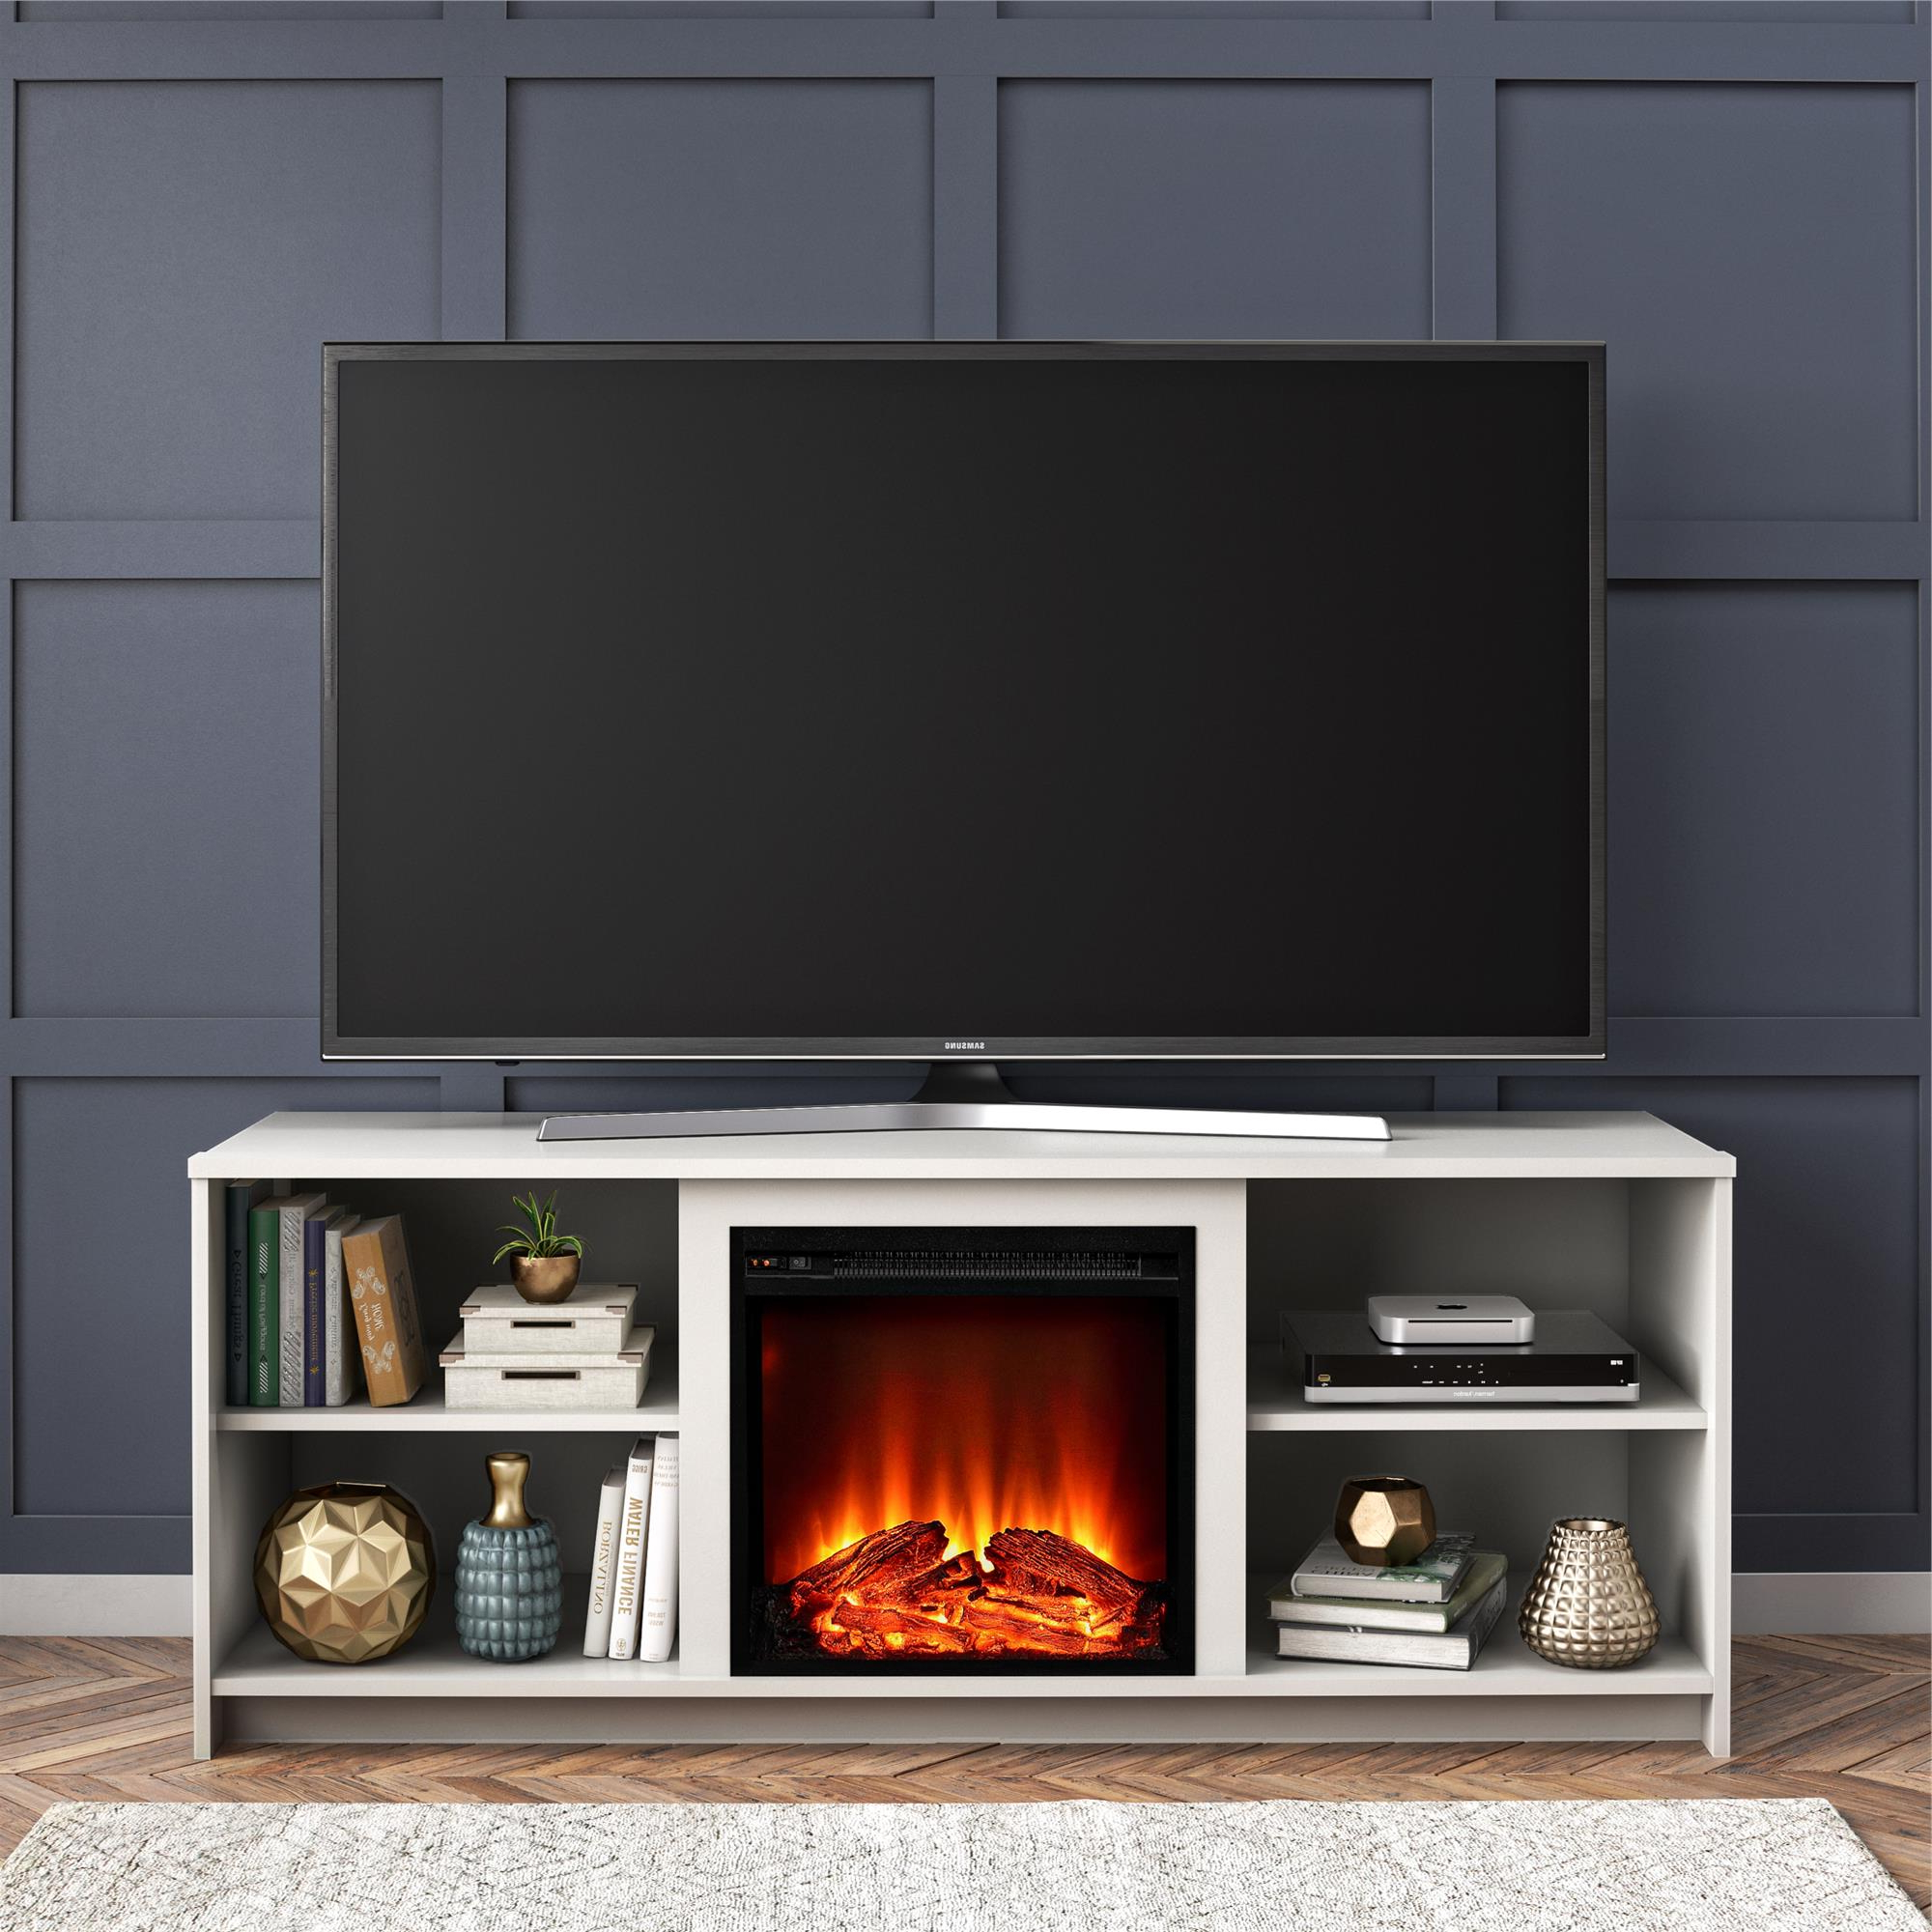 """Tv Stands For Tvs Up To 65"""" Inside Recent Mainstays Fireplace Tv Stand For Tvs Up To 65"""", White (View 1 of 22)"""